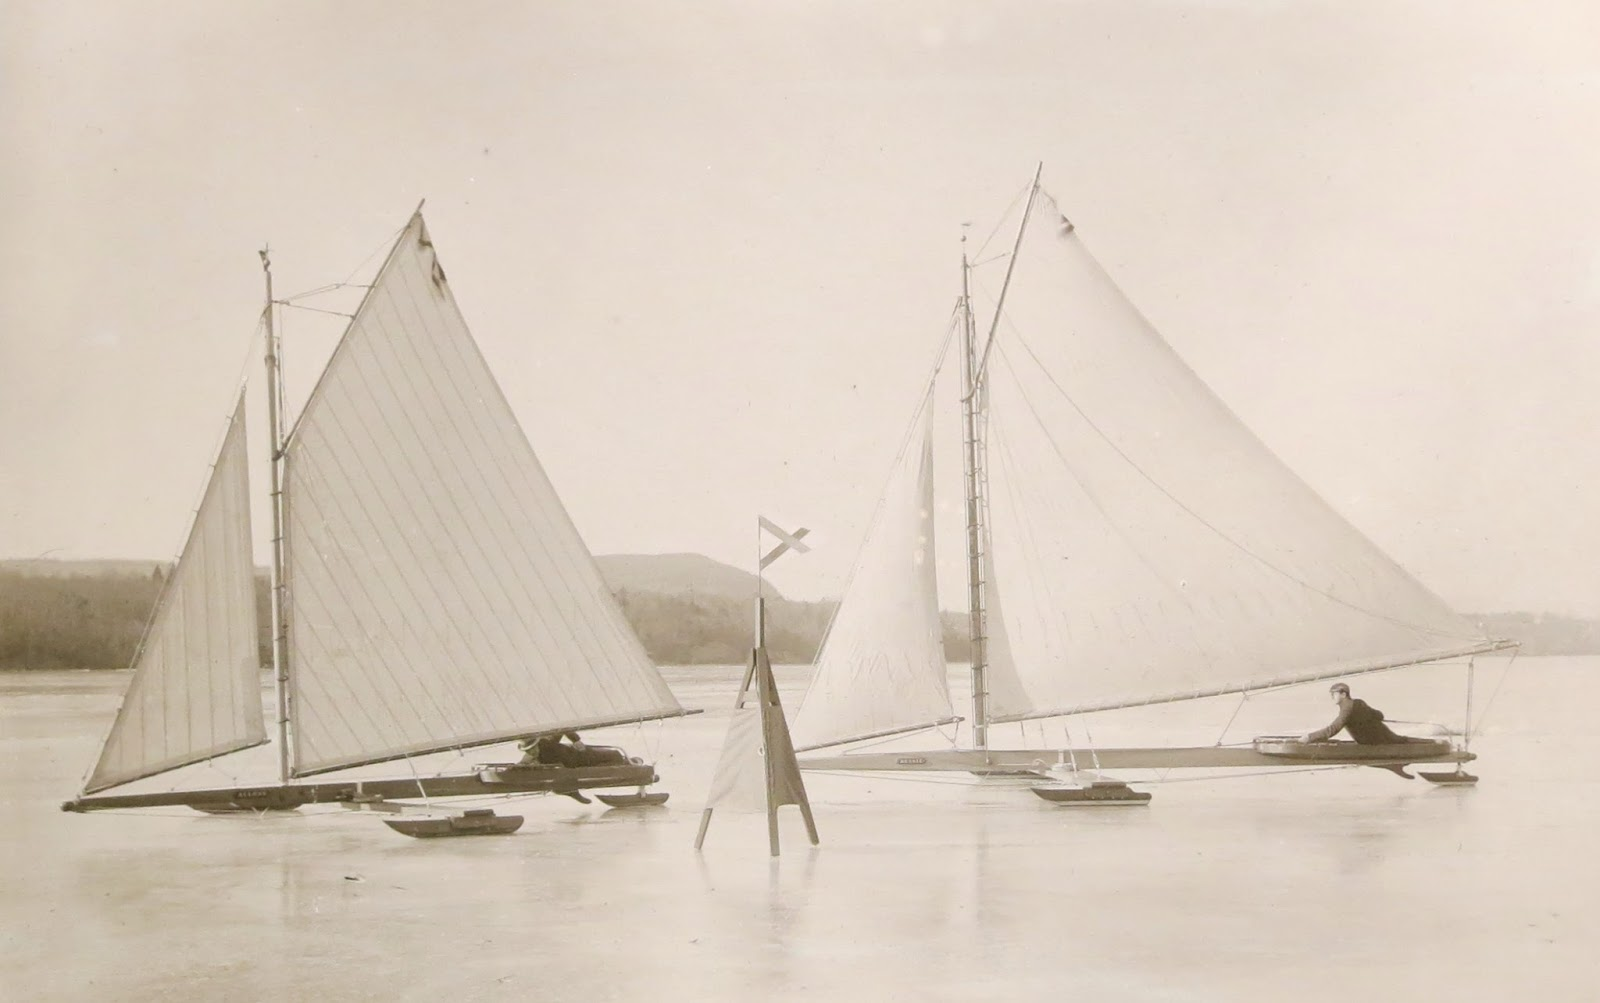 Early ice-yachts, predecessors of the modern iceboard.